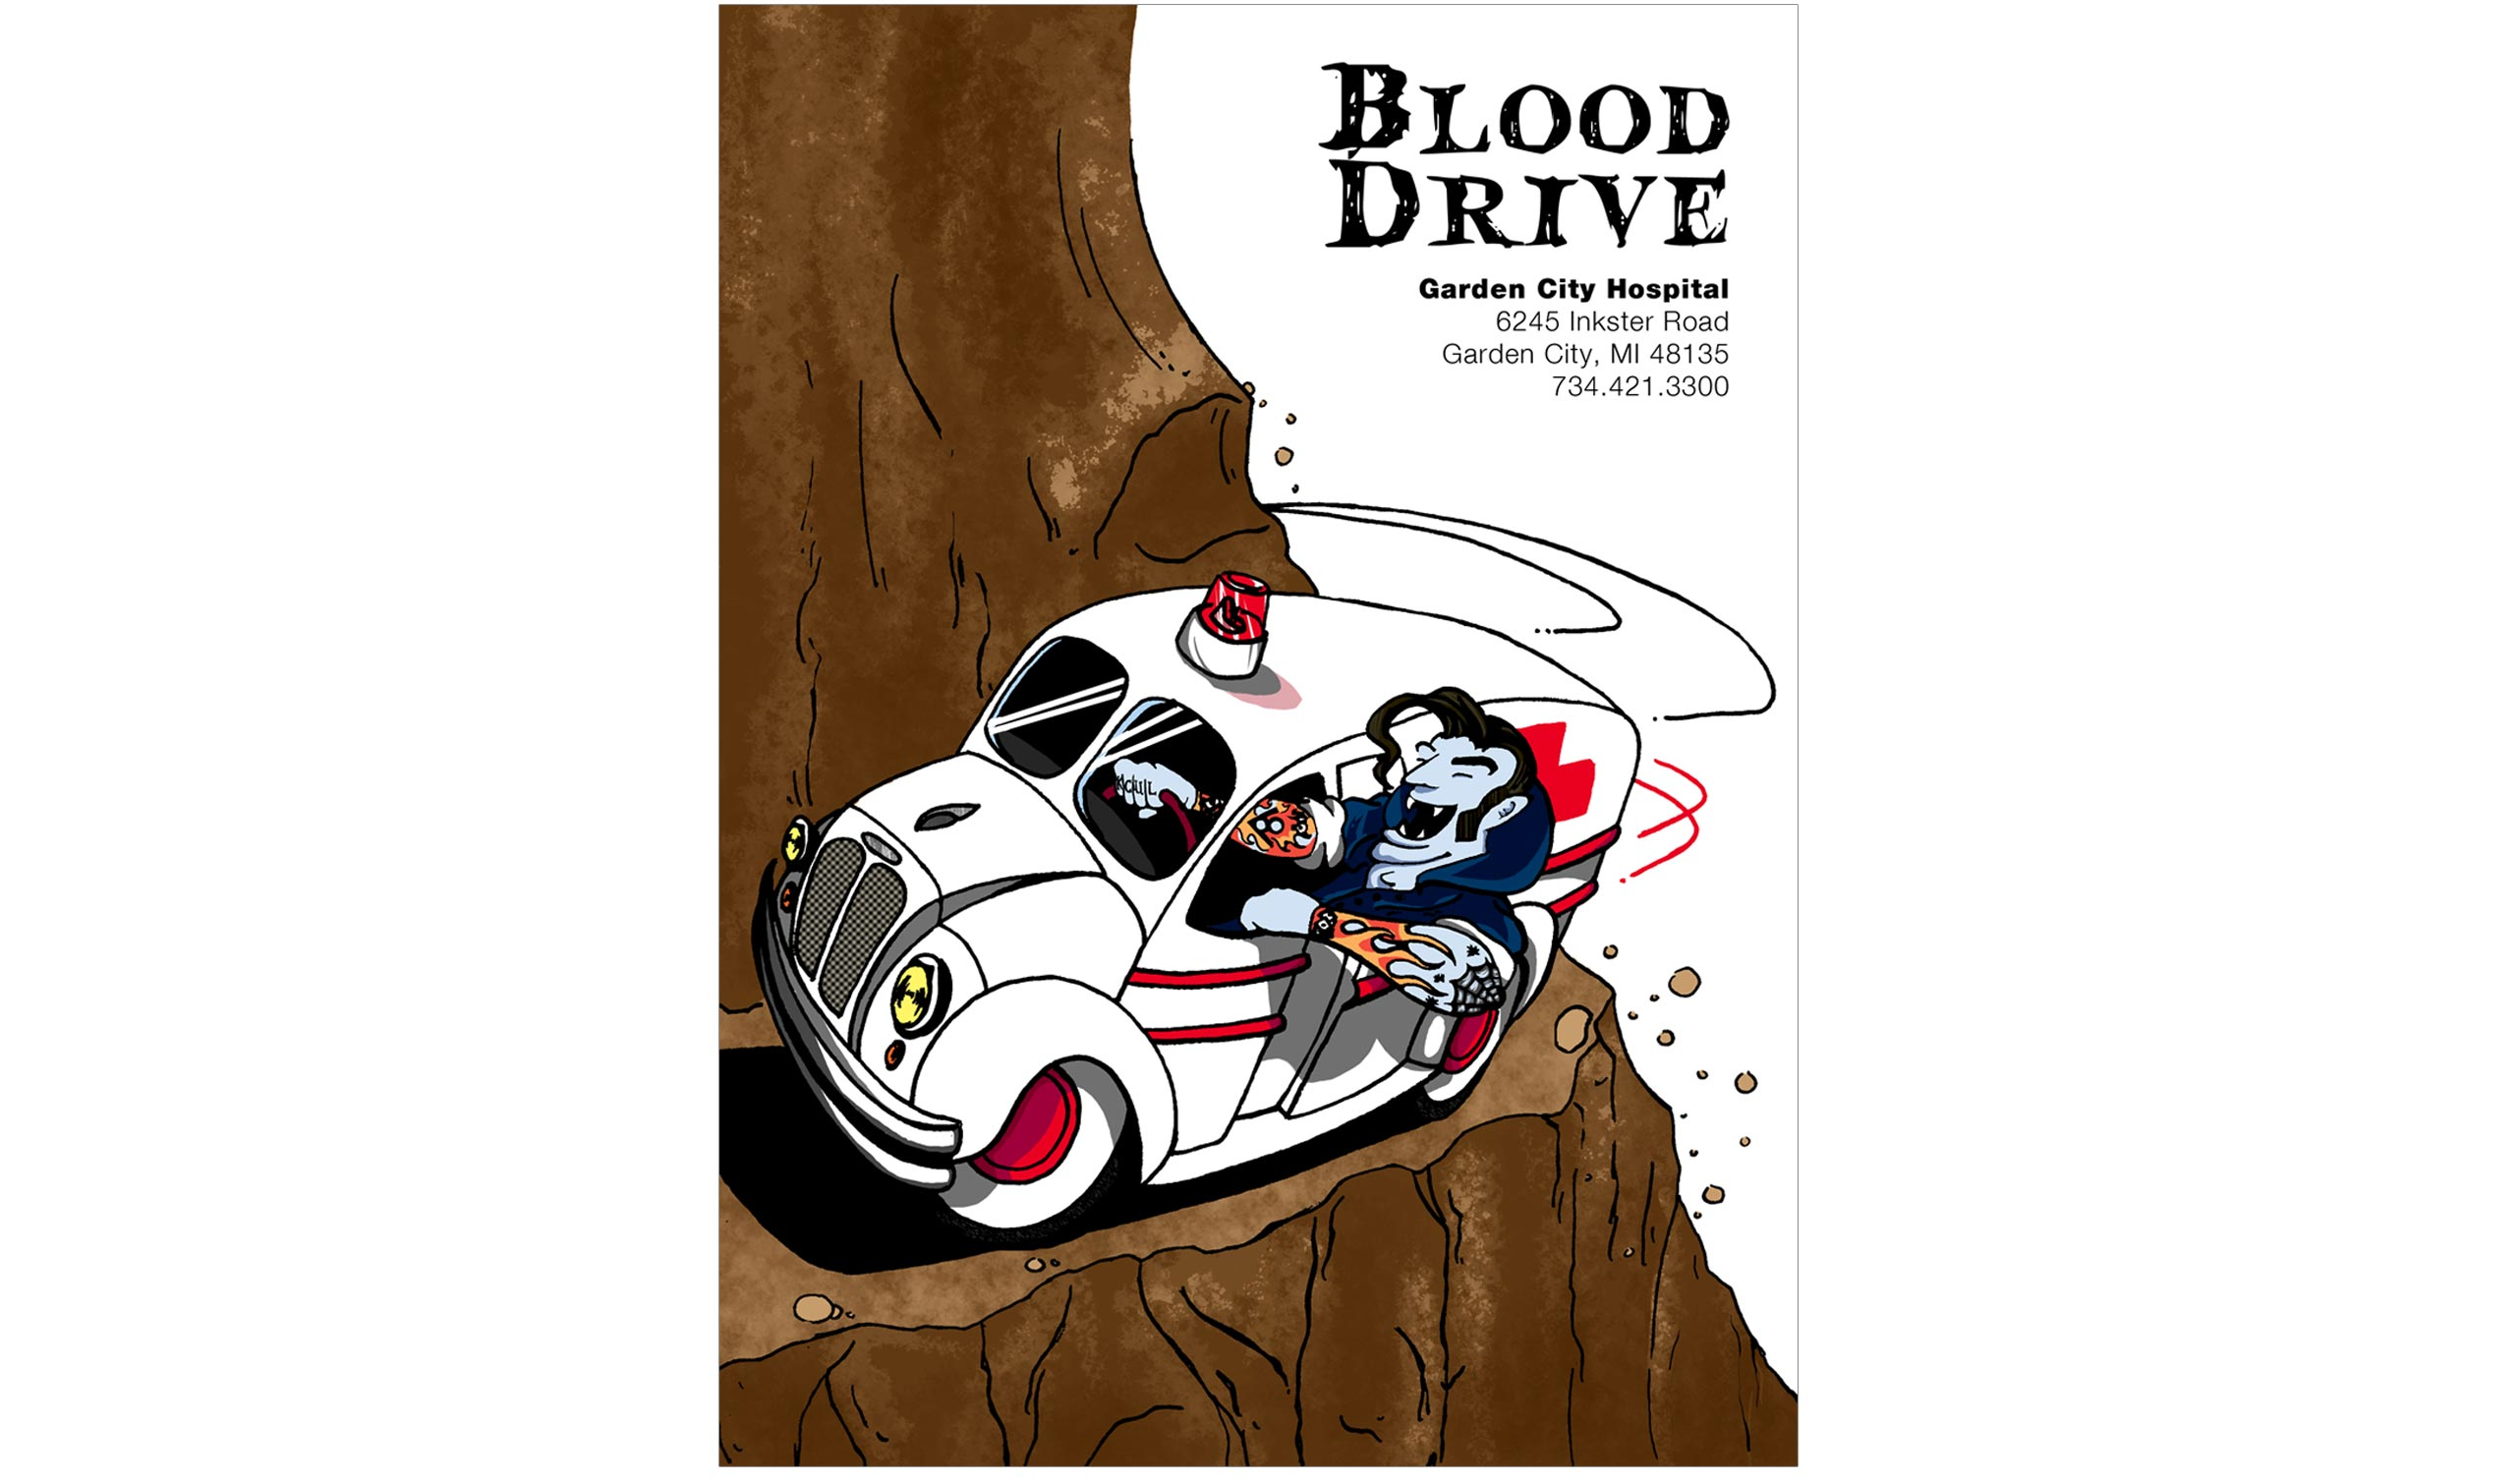 The-Blood-Drive-Poster